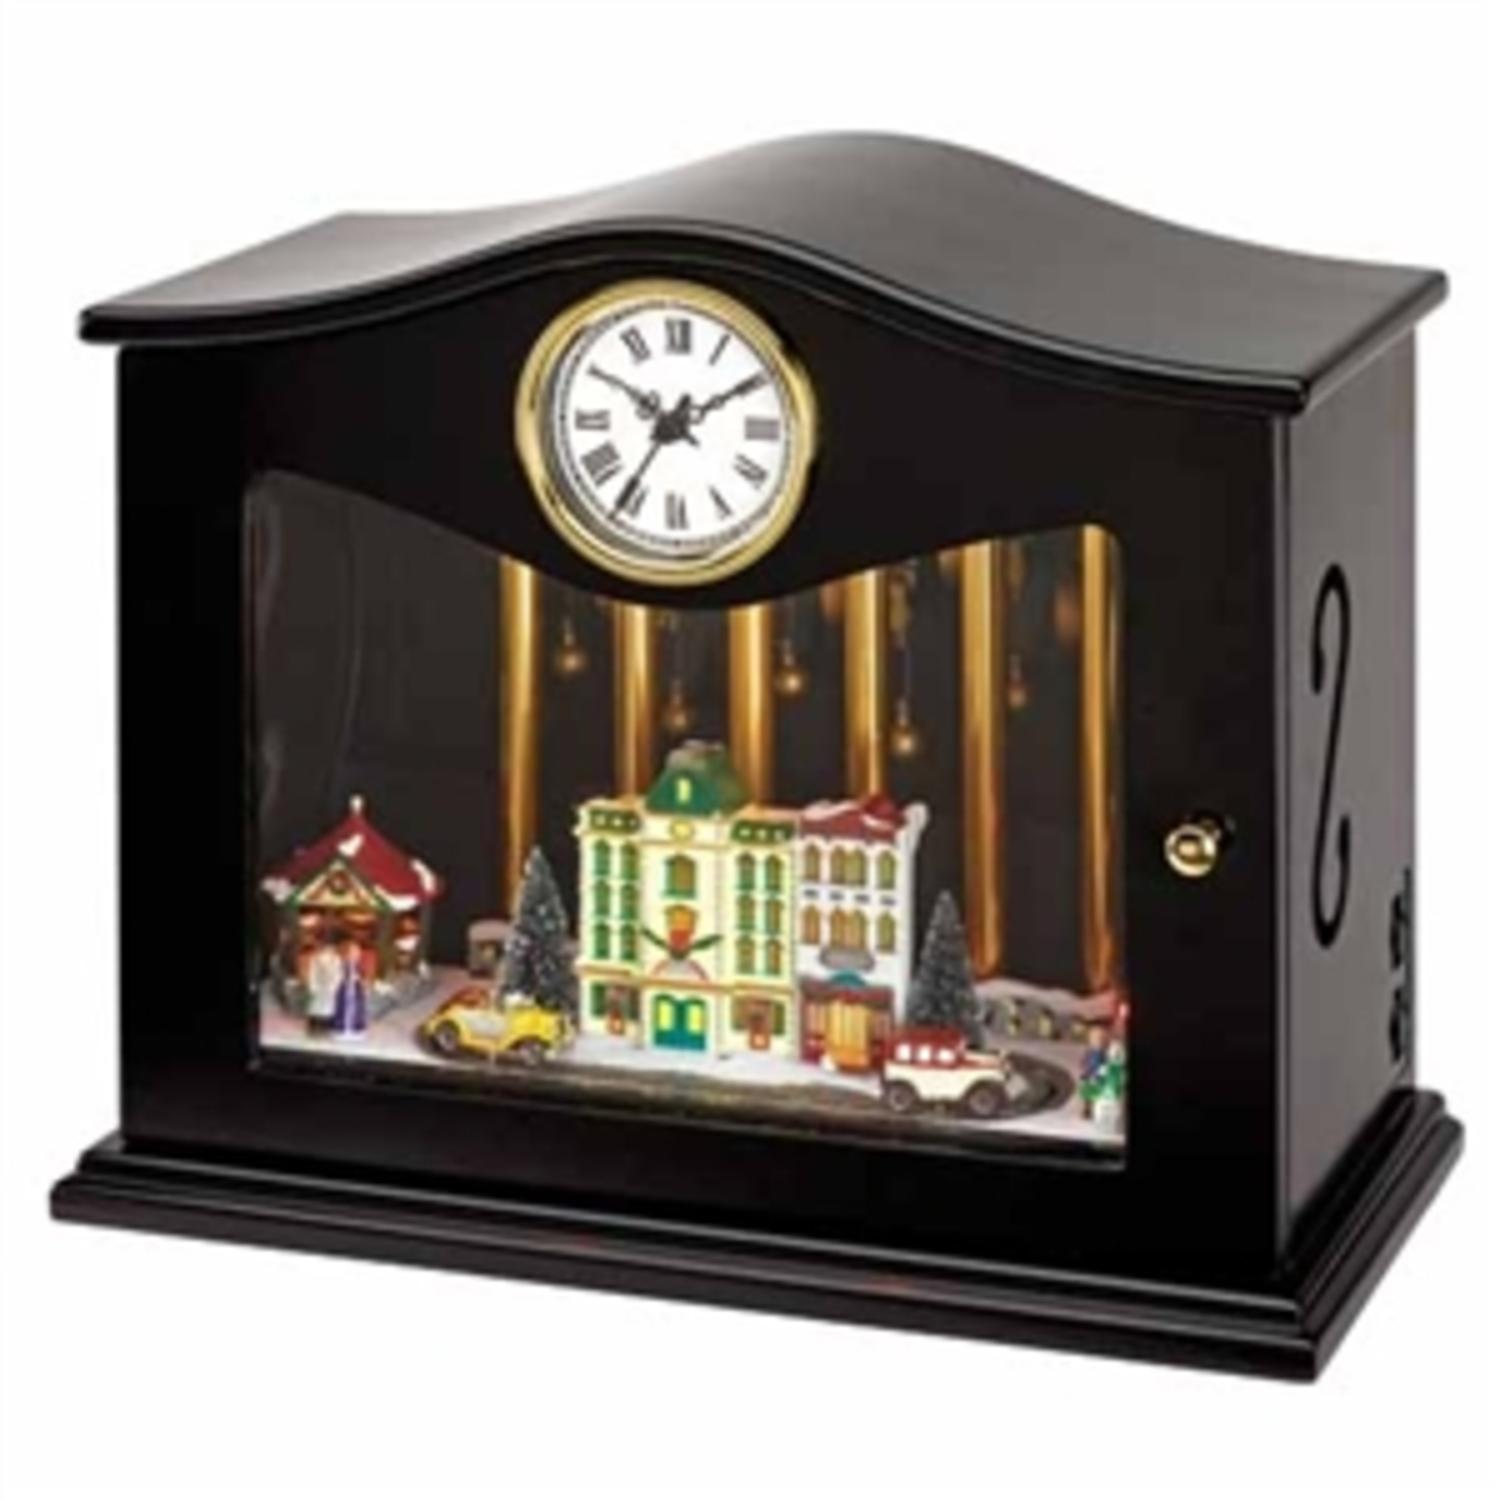 Mr. Christmas Animated and Musical Clock with Chimes and Village Scene #77646